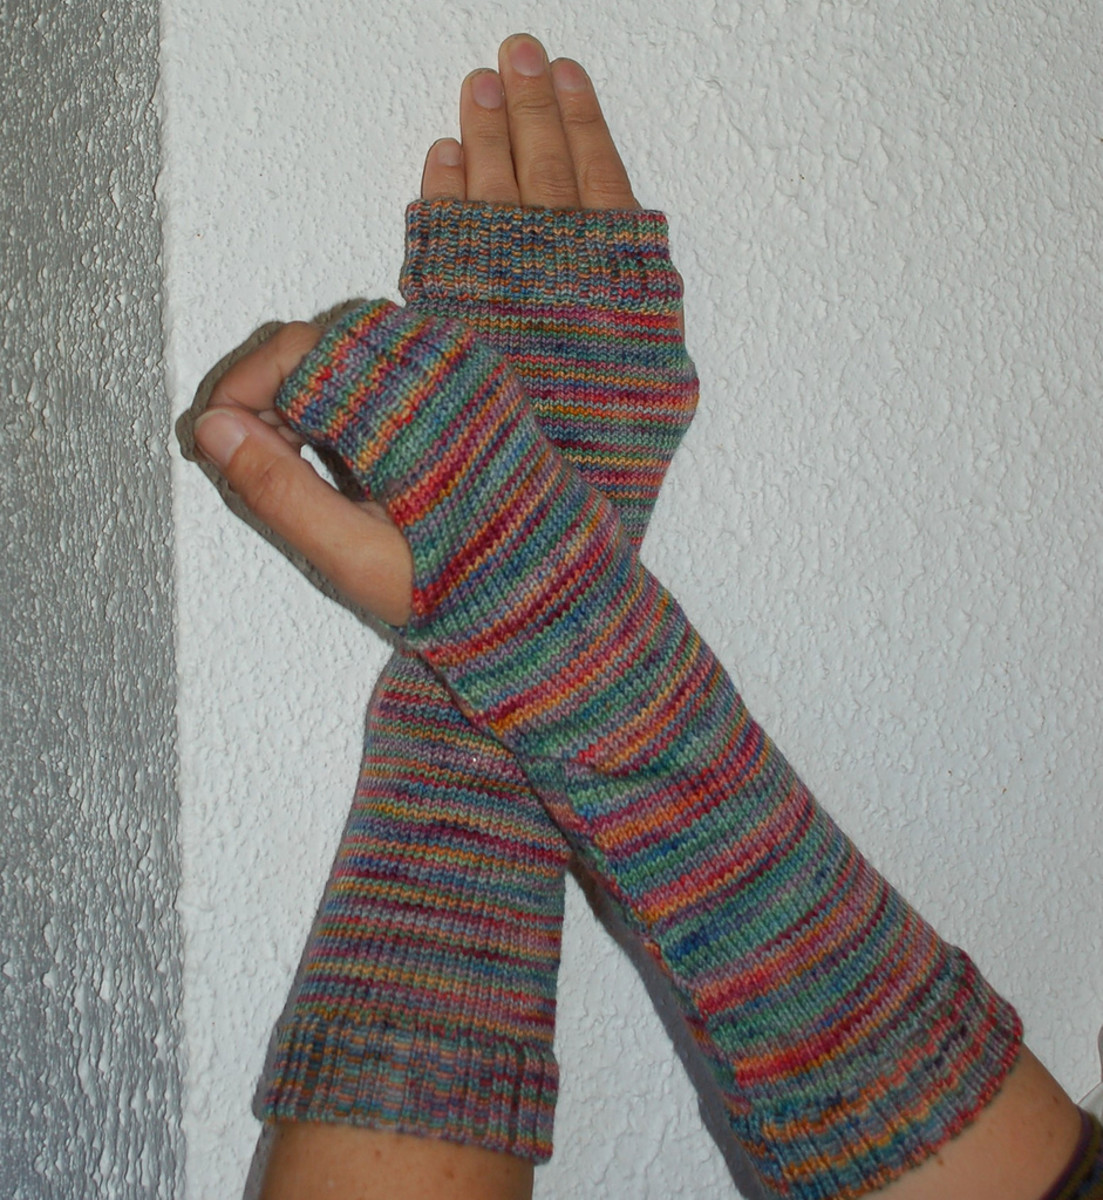 How to Knit Easy Armwarmers